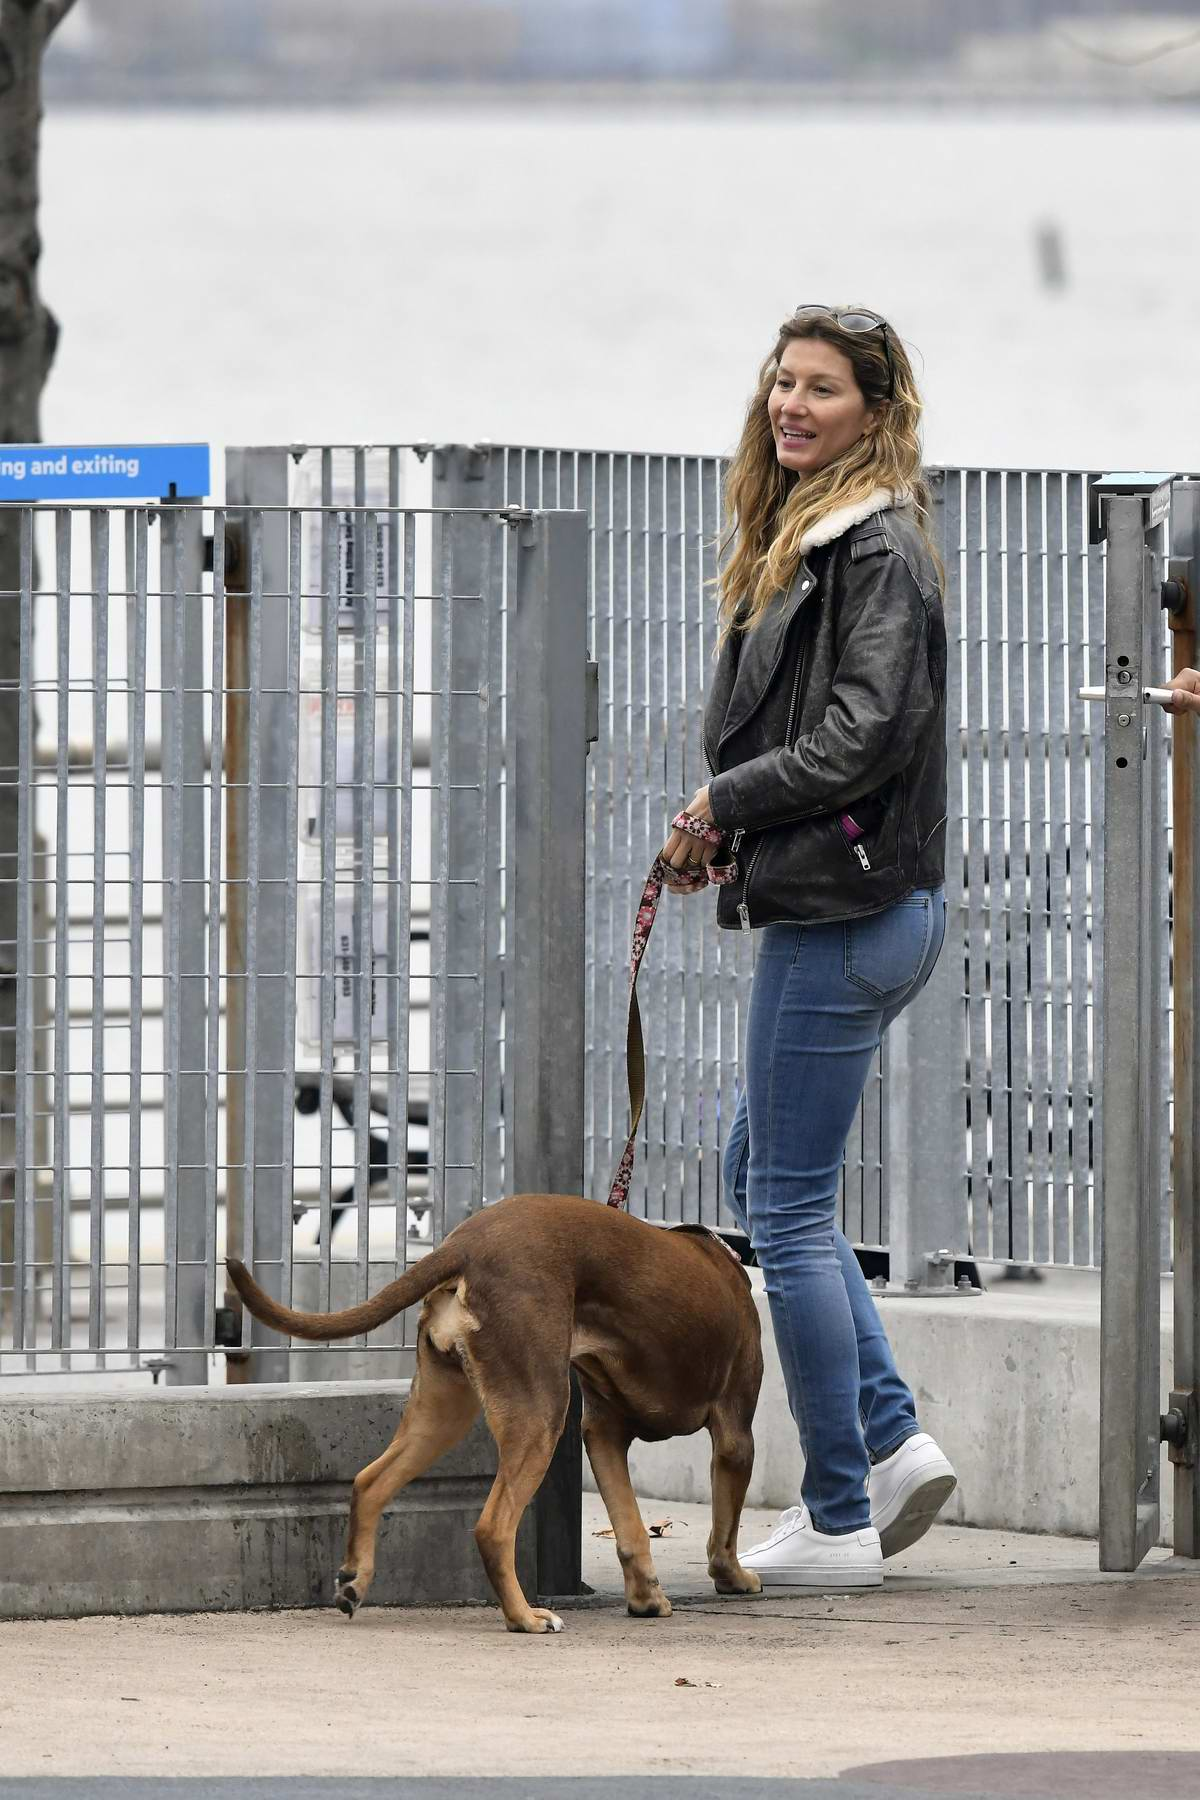 Gisele Bundchen steps out in a black leather jacket and jeans to walk her dogs in New York City